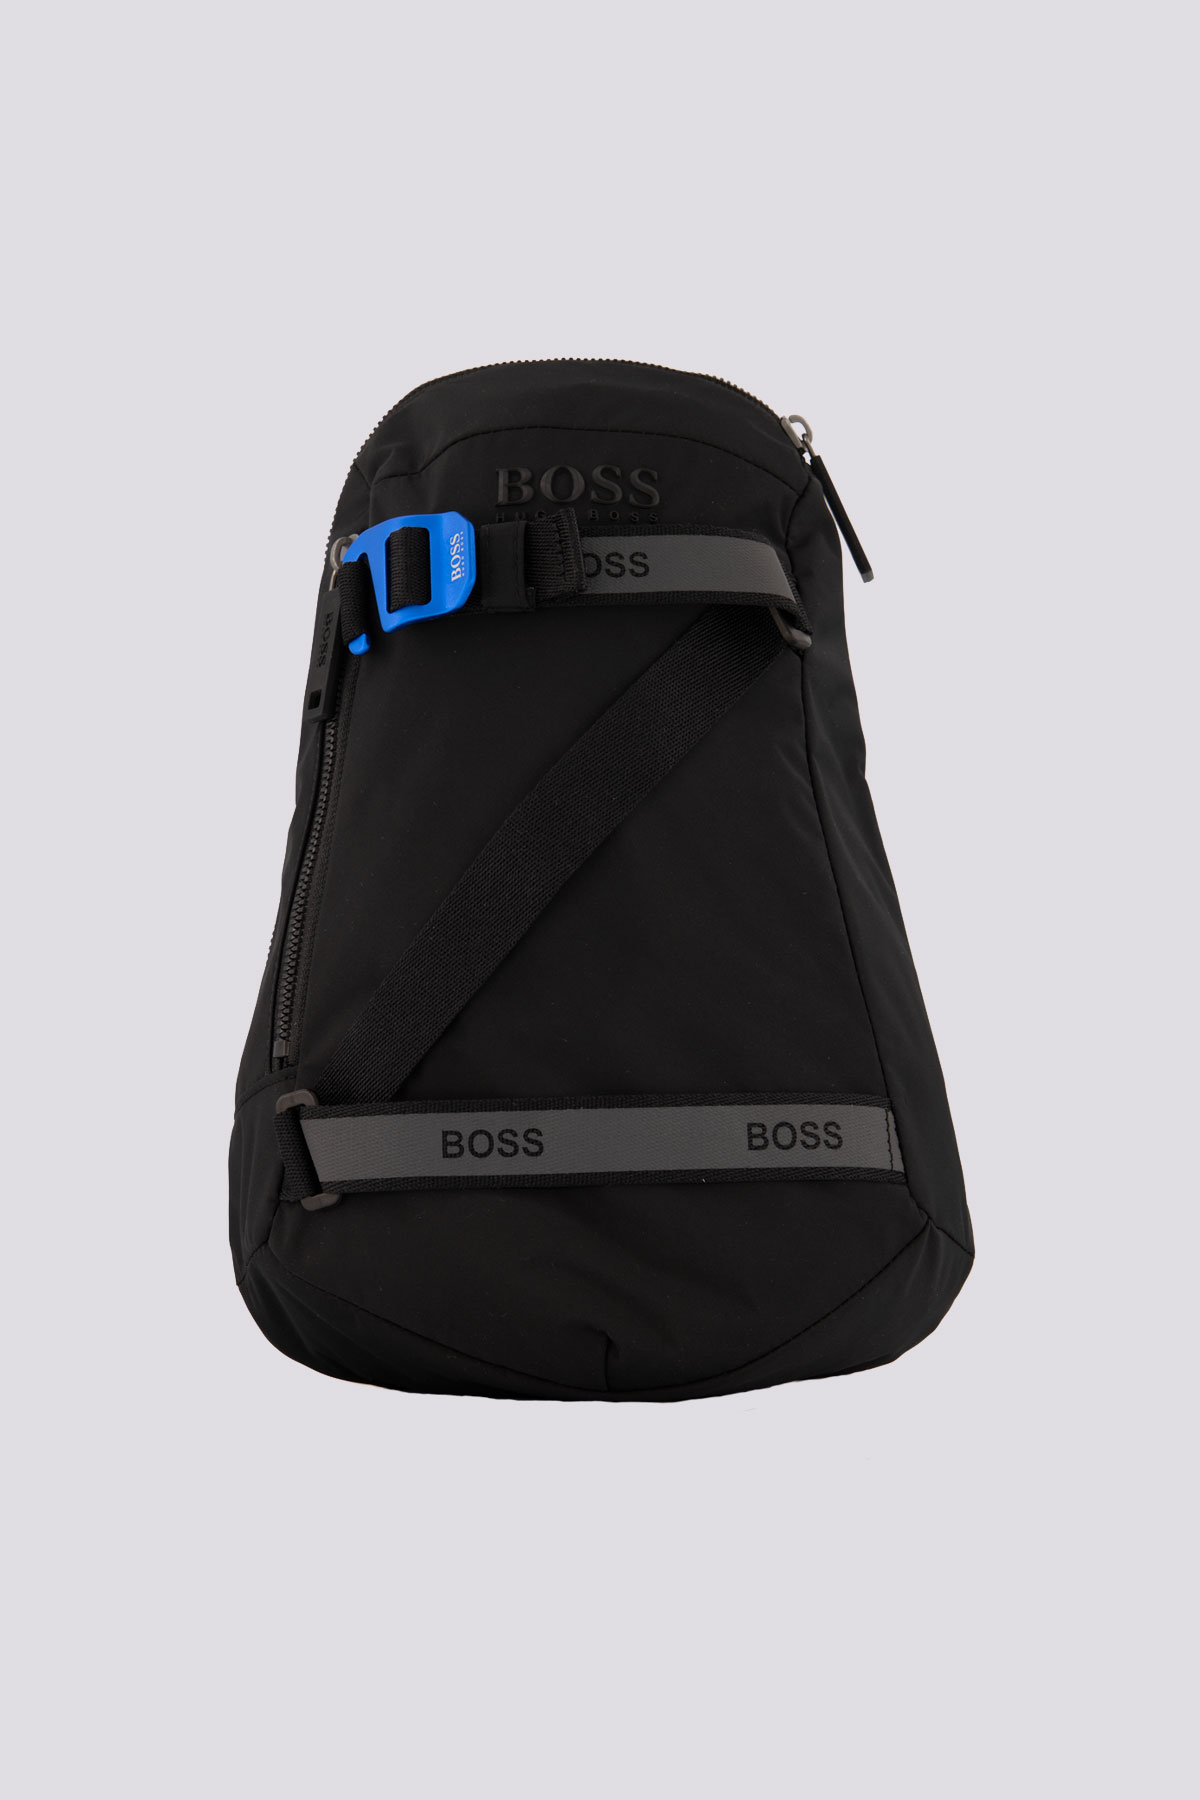 Backpack marca BOSS  de nylon estructurado con correas con logo.